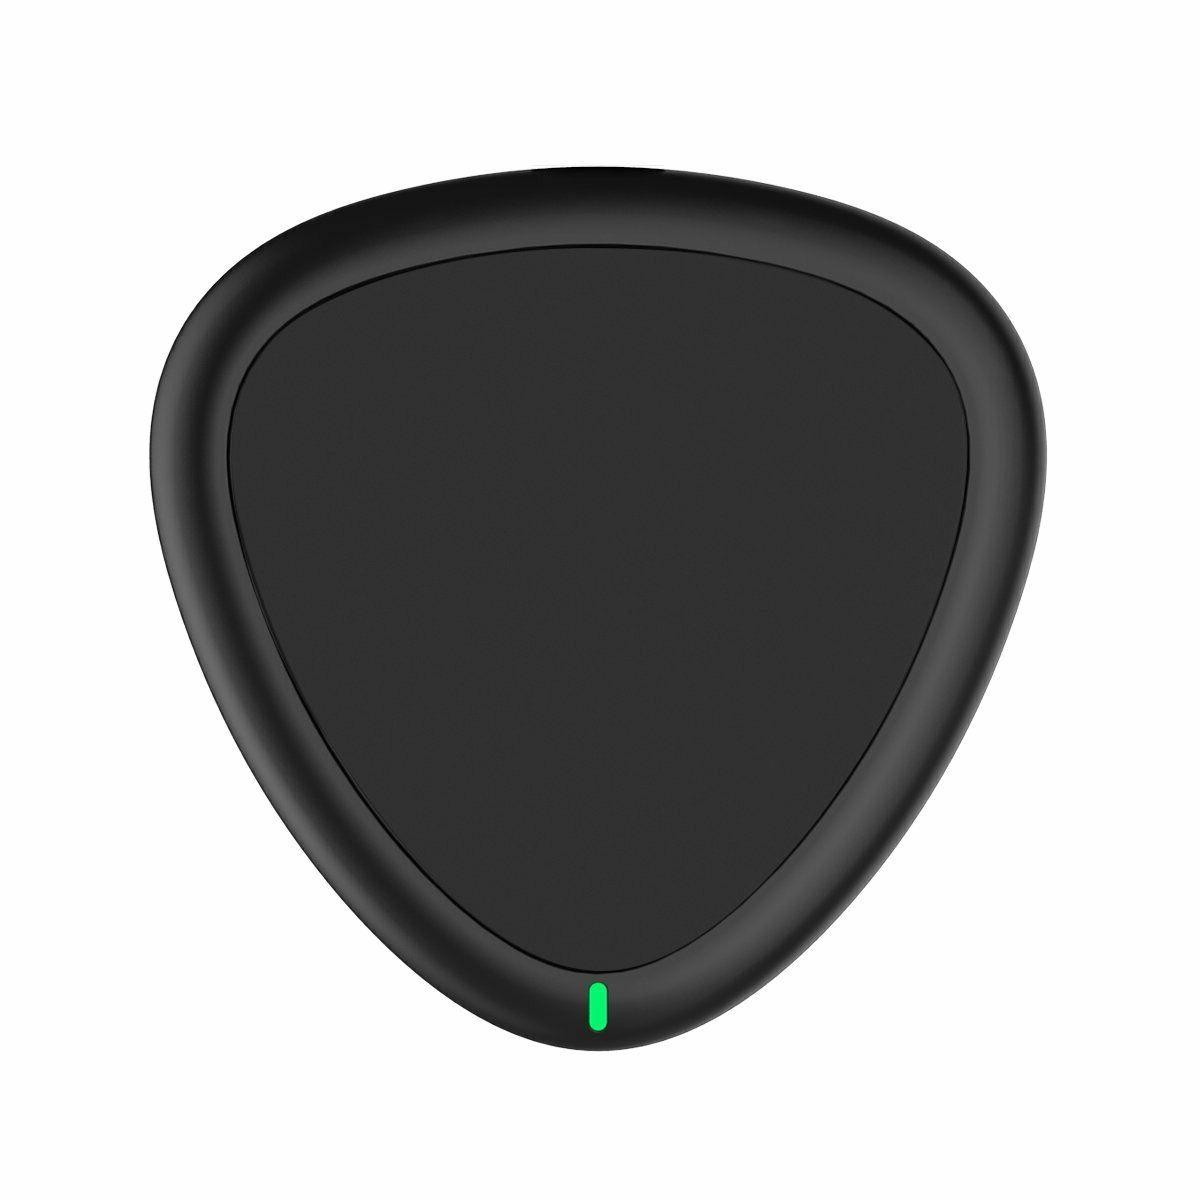 Yootech Wireless Charger, for iPhone XR, Samsung Galaxy S10/